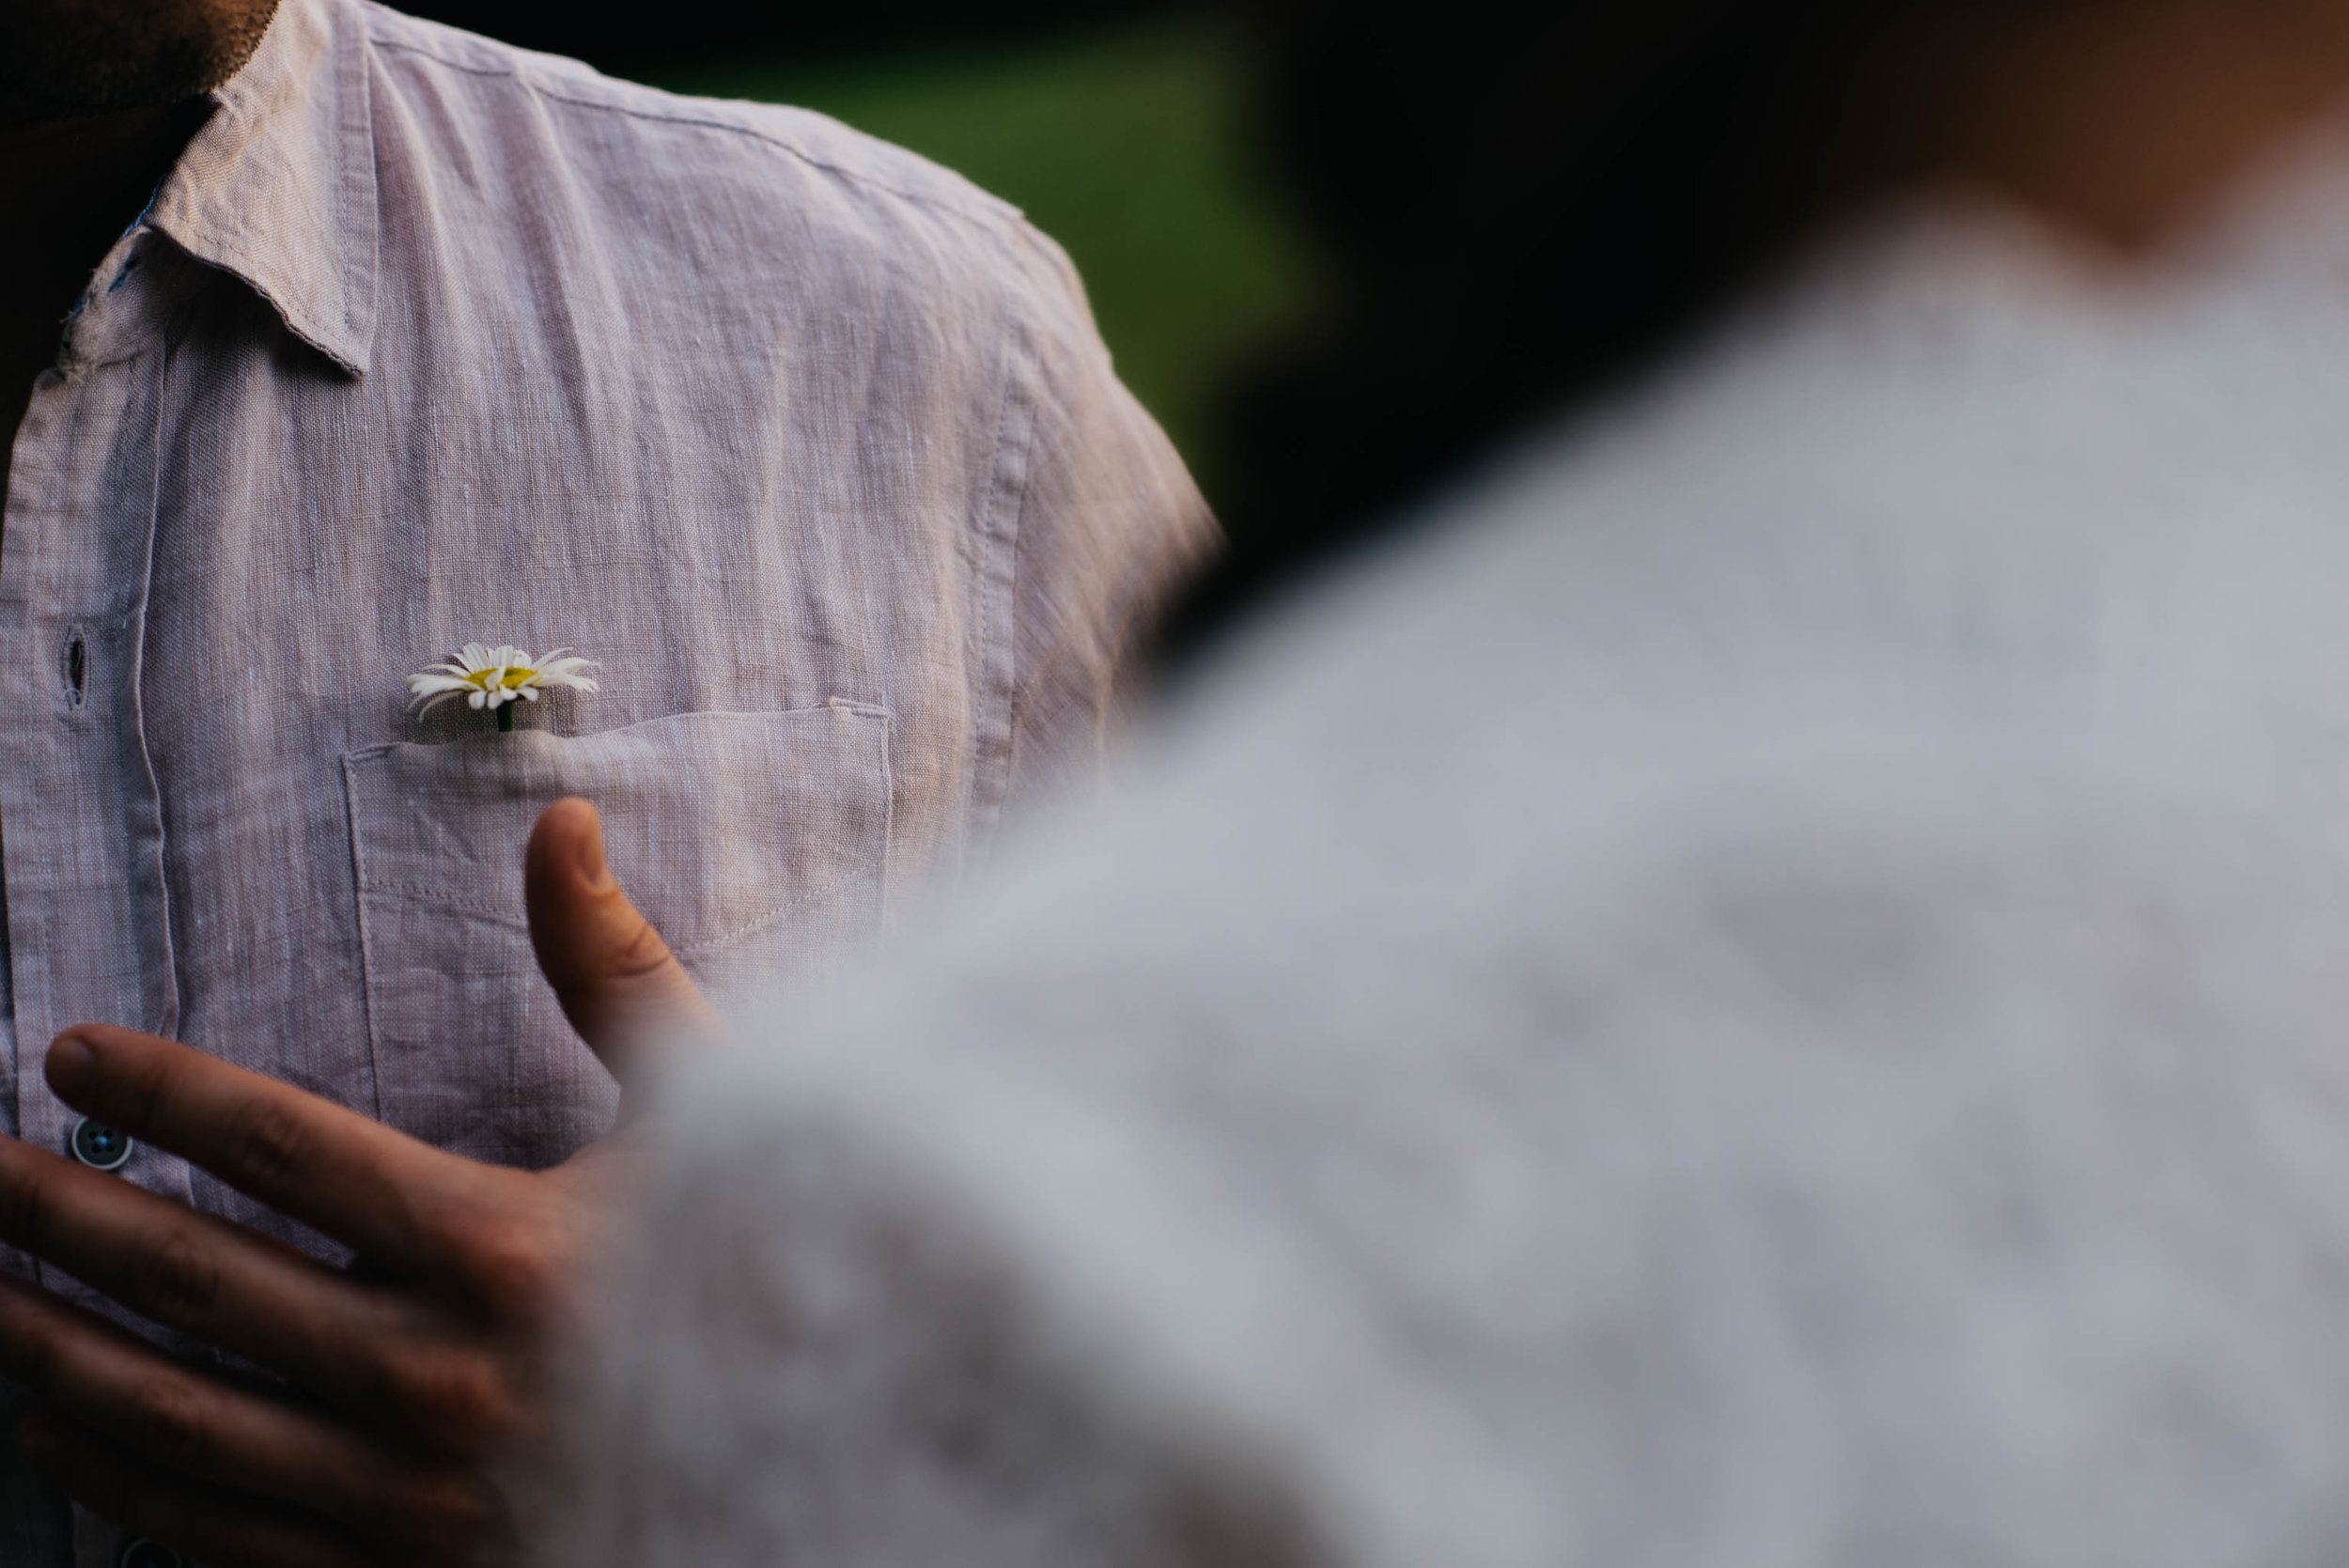 detail photo of a flower sitting in a mans shirt pocket after his fiance gave it to him